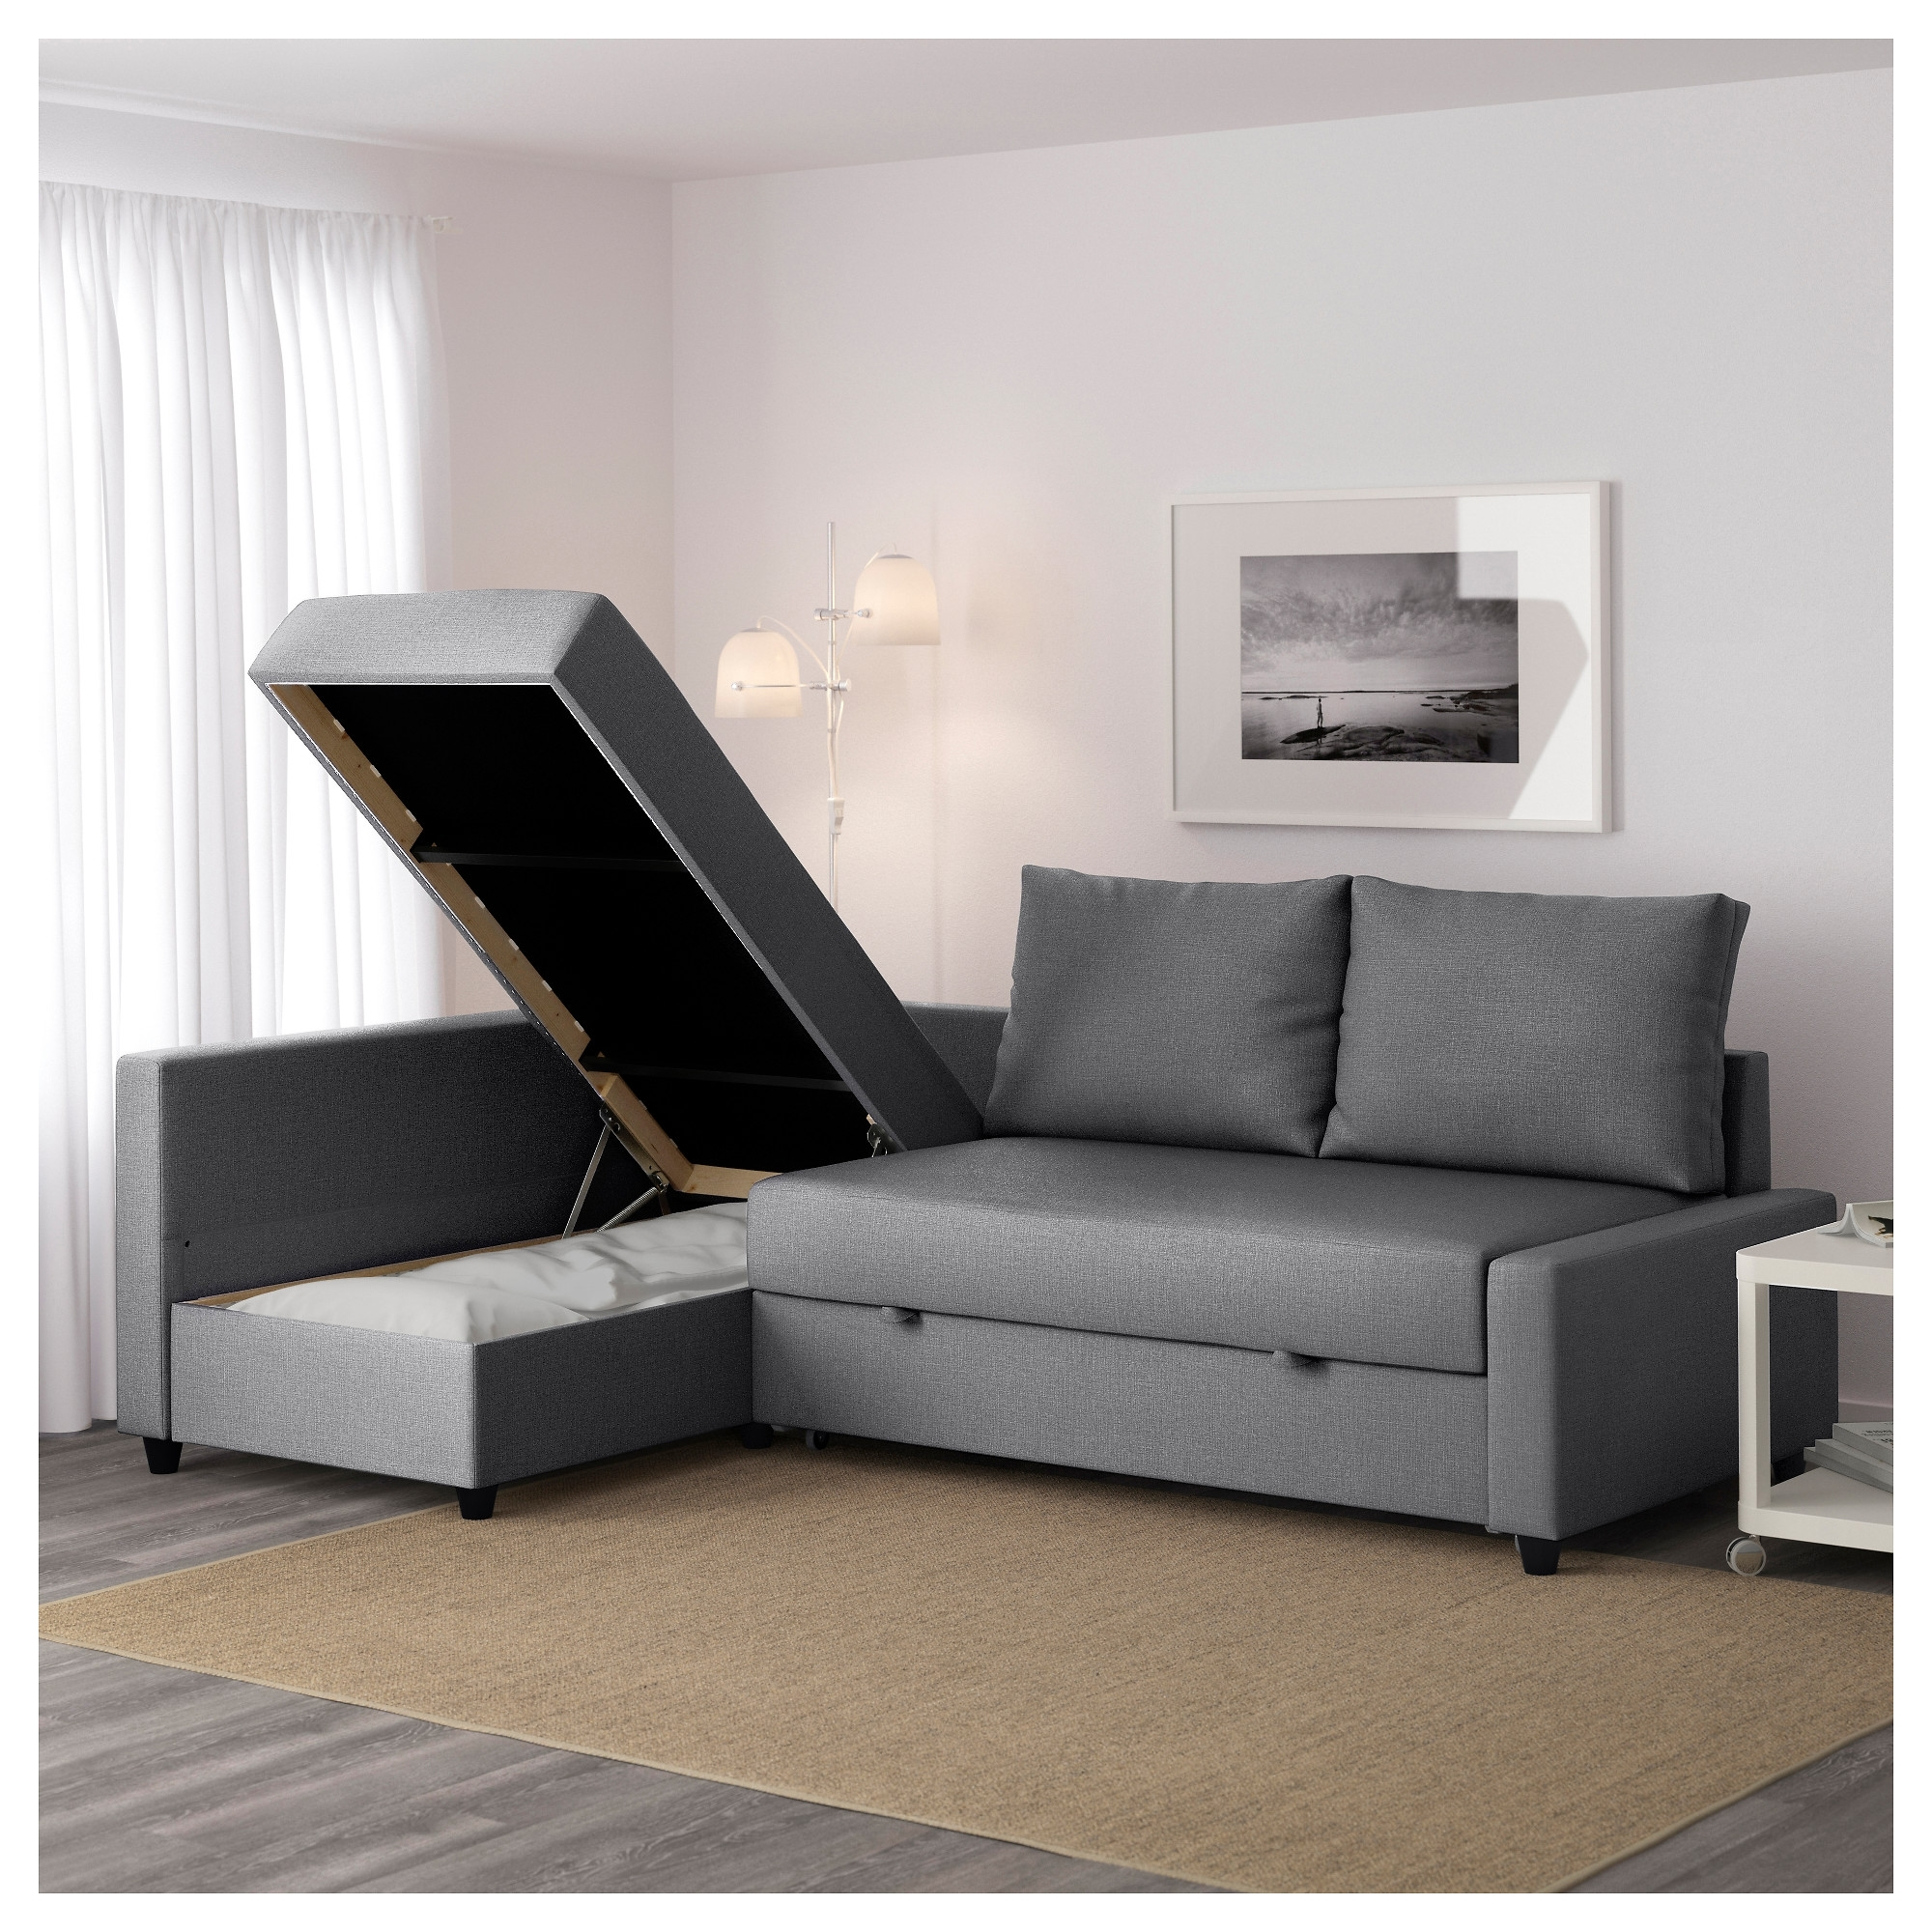 Friheten Corner Sofa Bed With Storage – Skiftebo Dark Gray – Ikea Inside Ikea Sectional Sofa Beds (View 3 of 10)